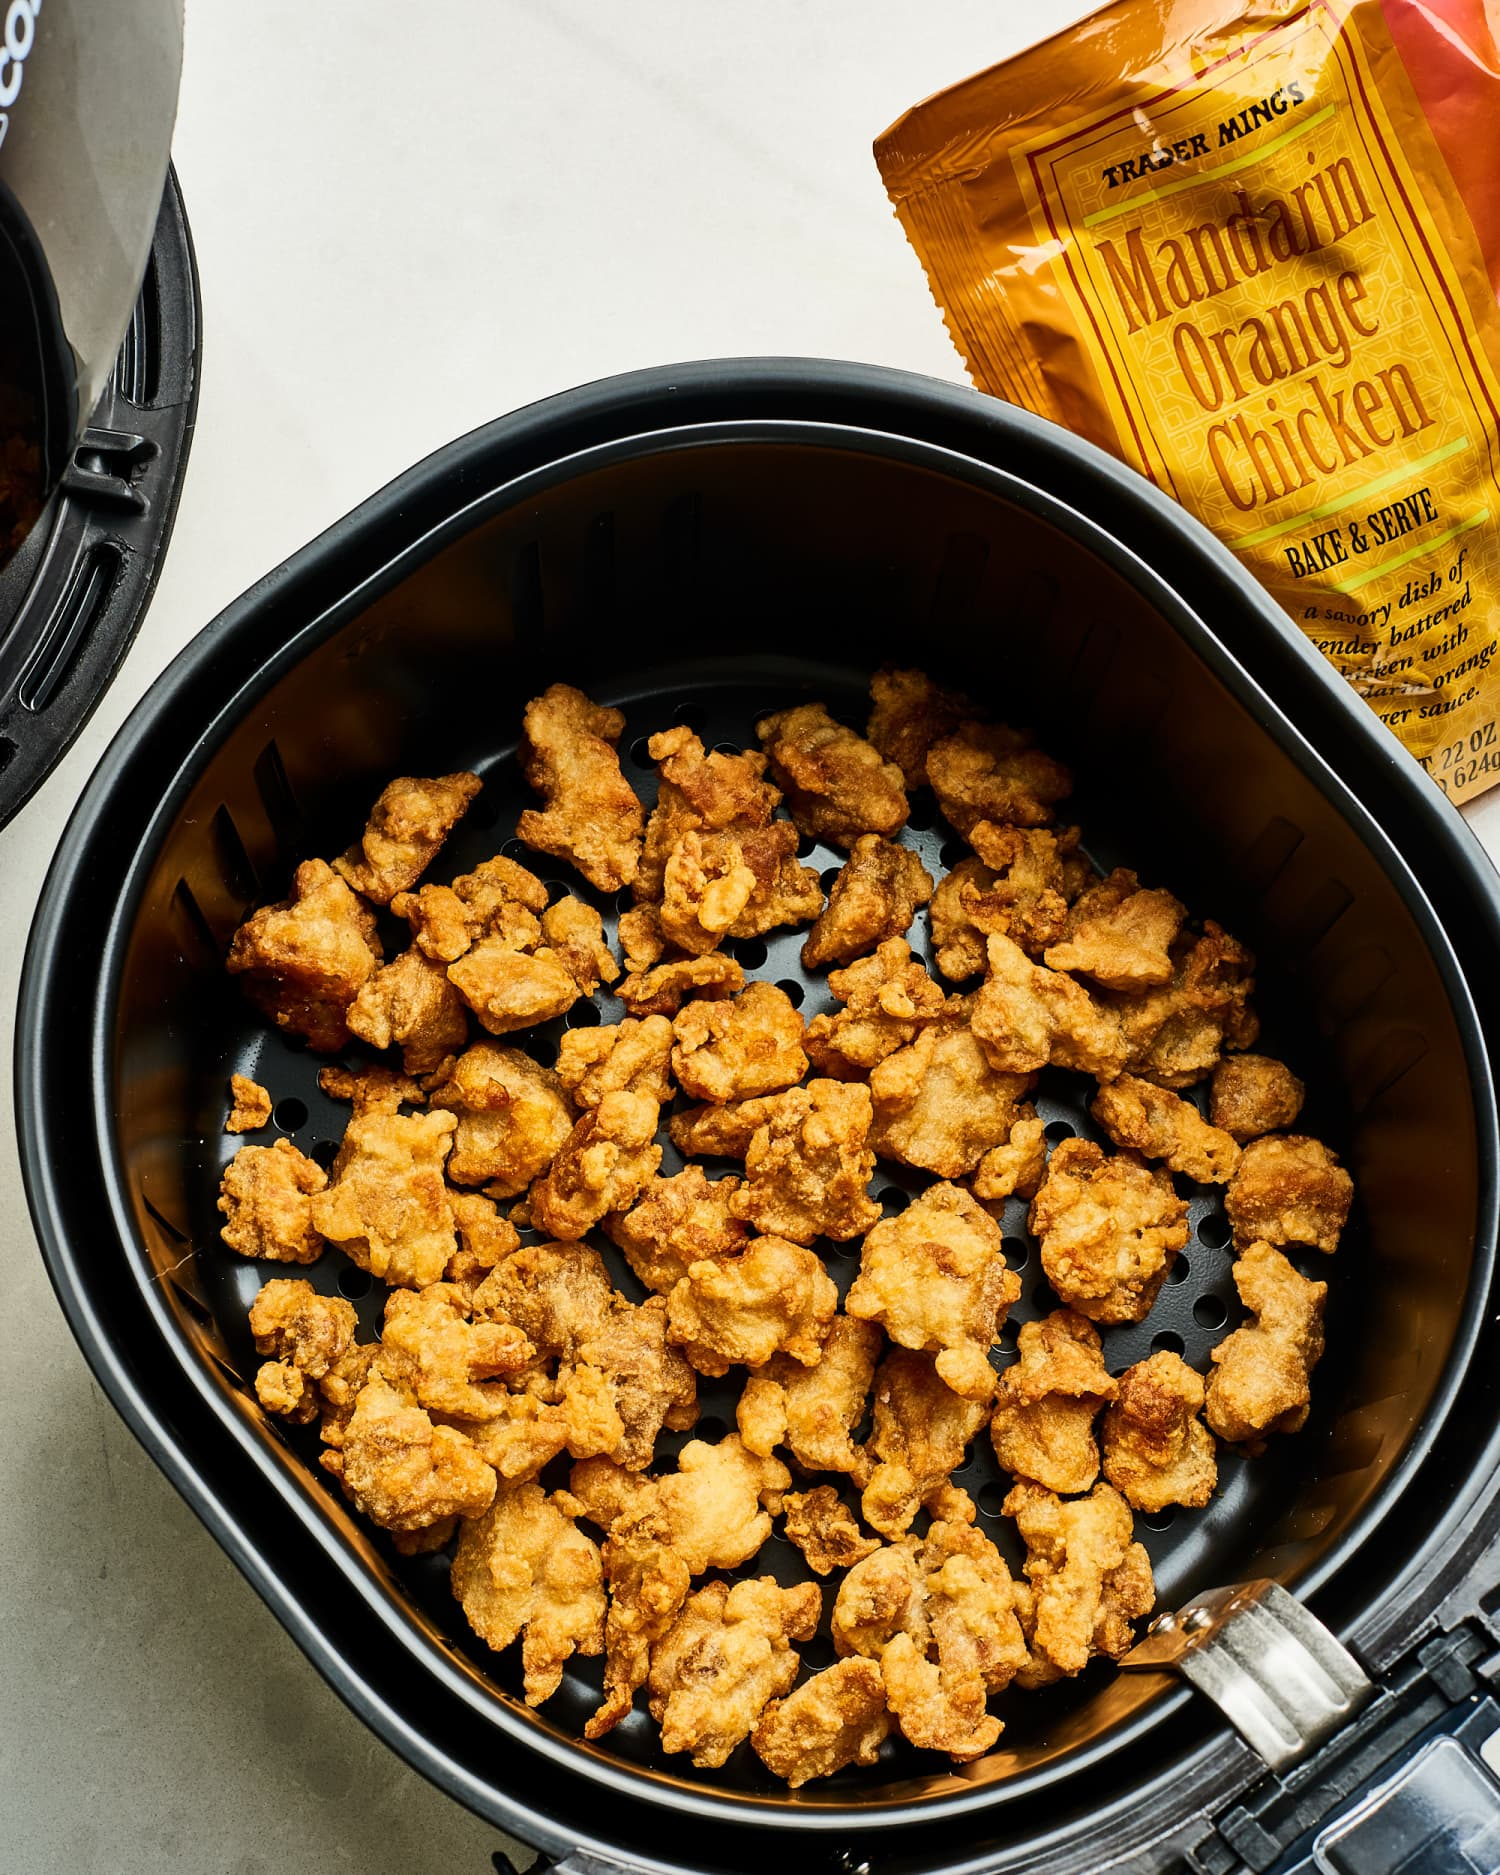 The Absolute Best Way to Prepare Trader Joe's Orange Chicken